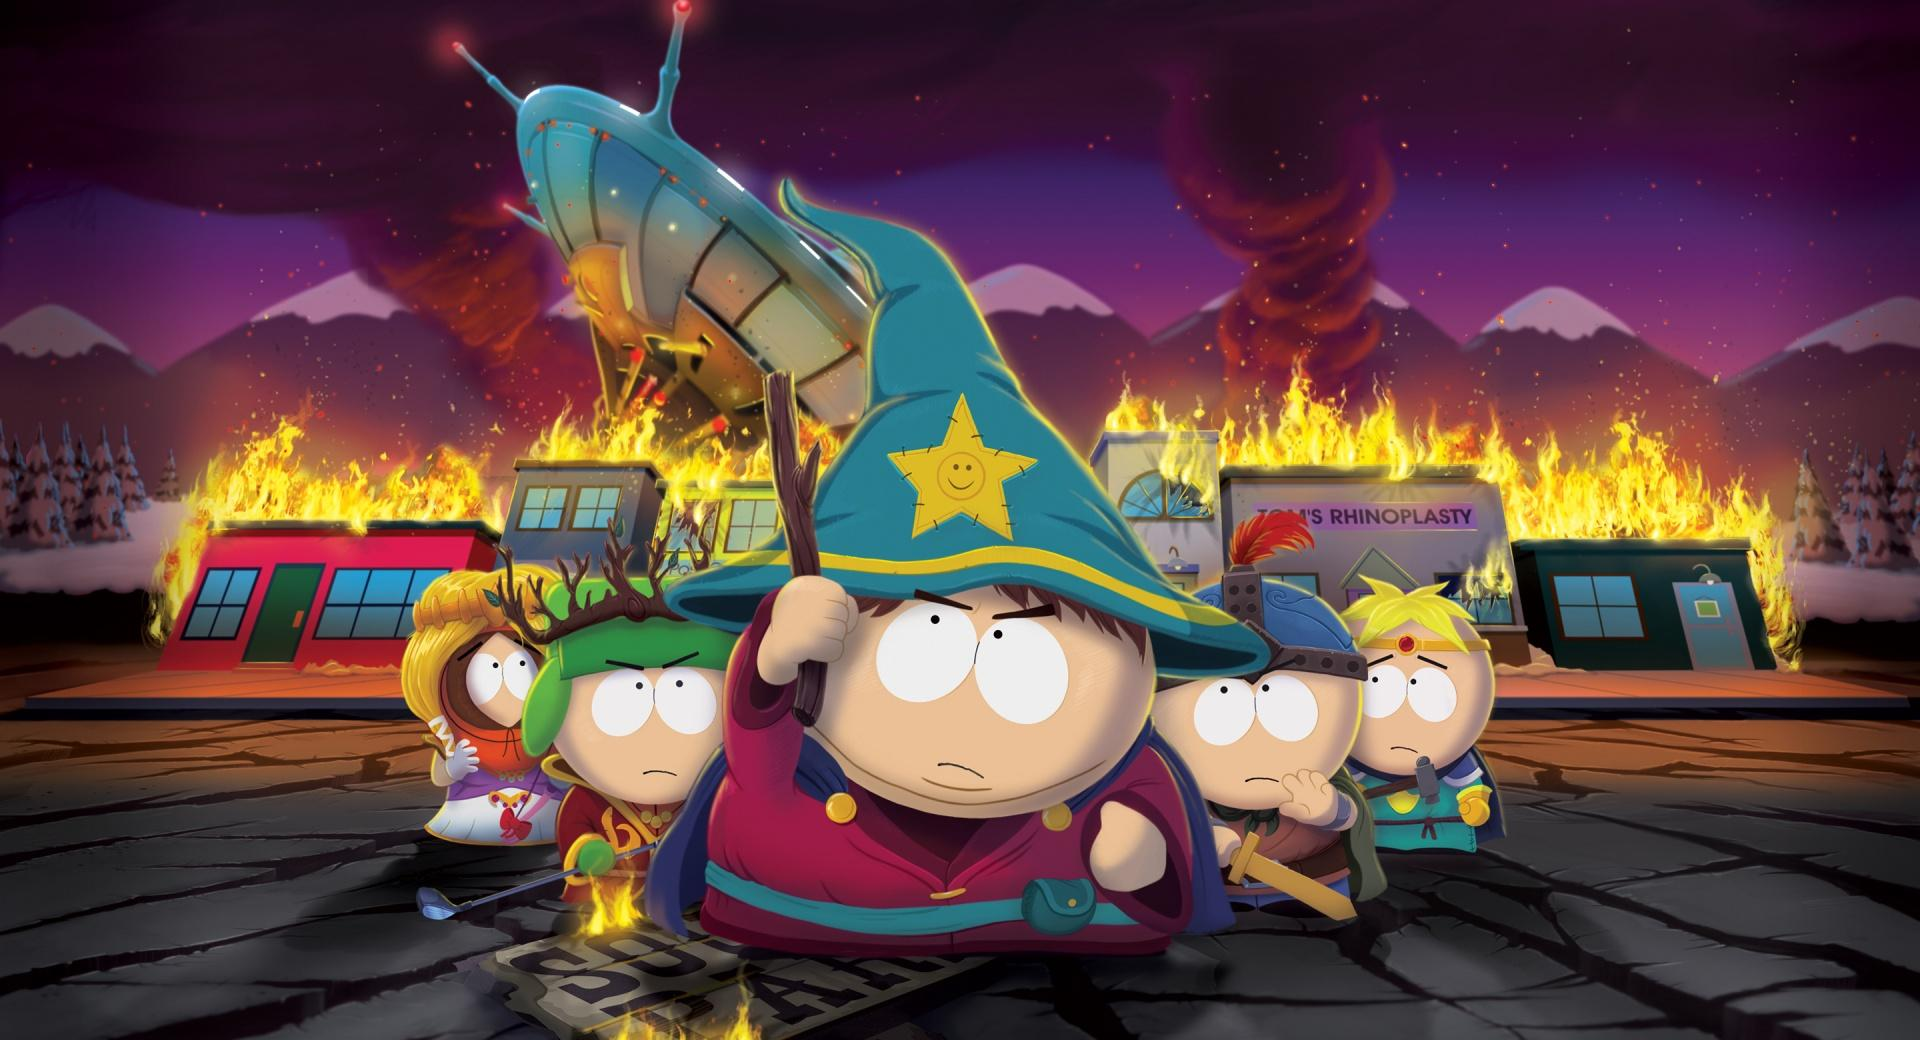 South Park The Stick of Truth 2014 wallpapers HD quality